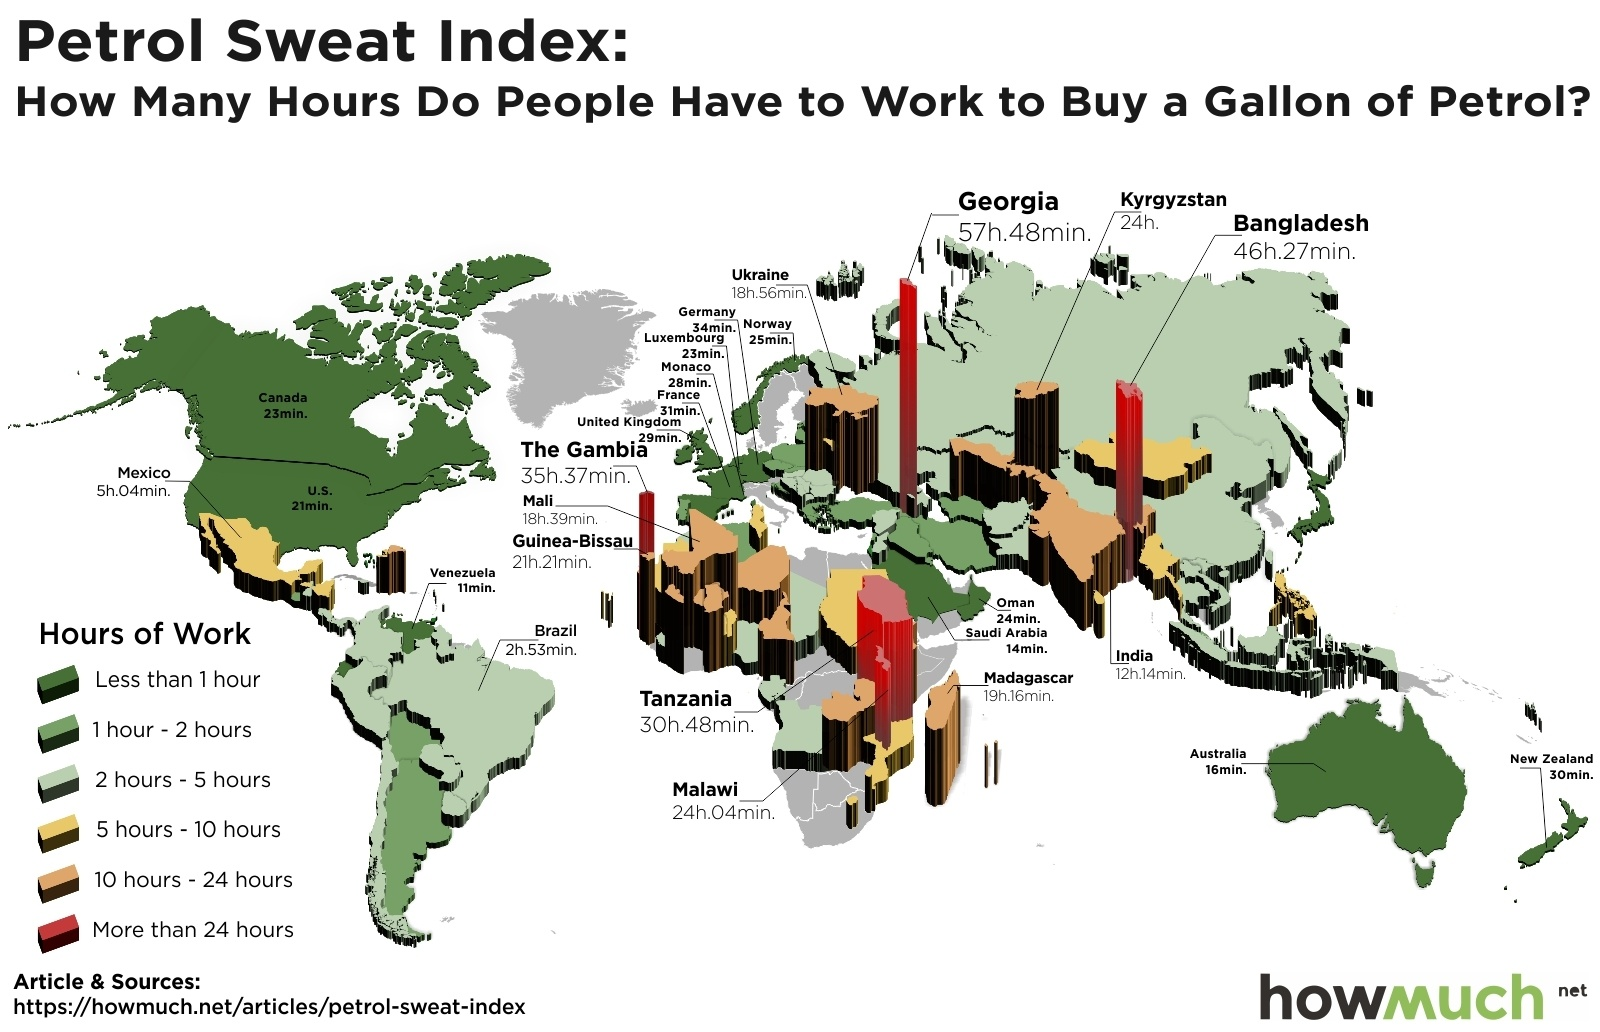 Petrol sweat index: How many hours do people have to work to buy a gallon of petrol?